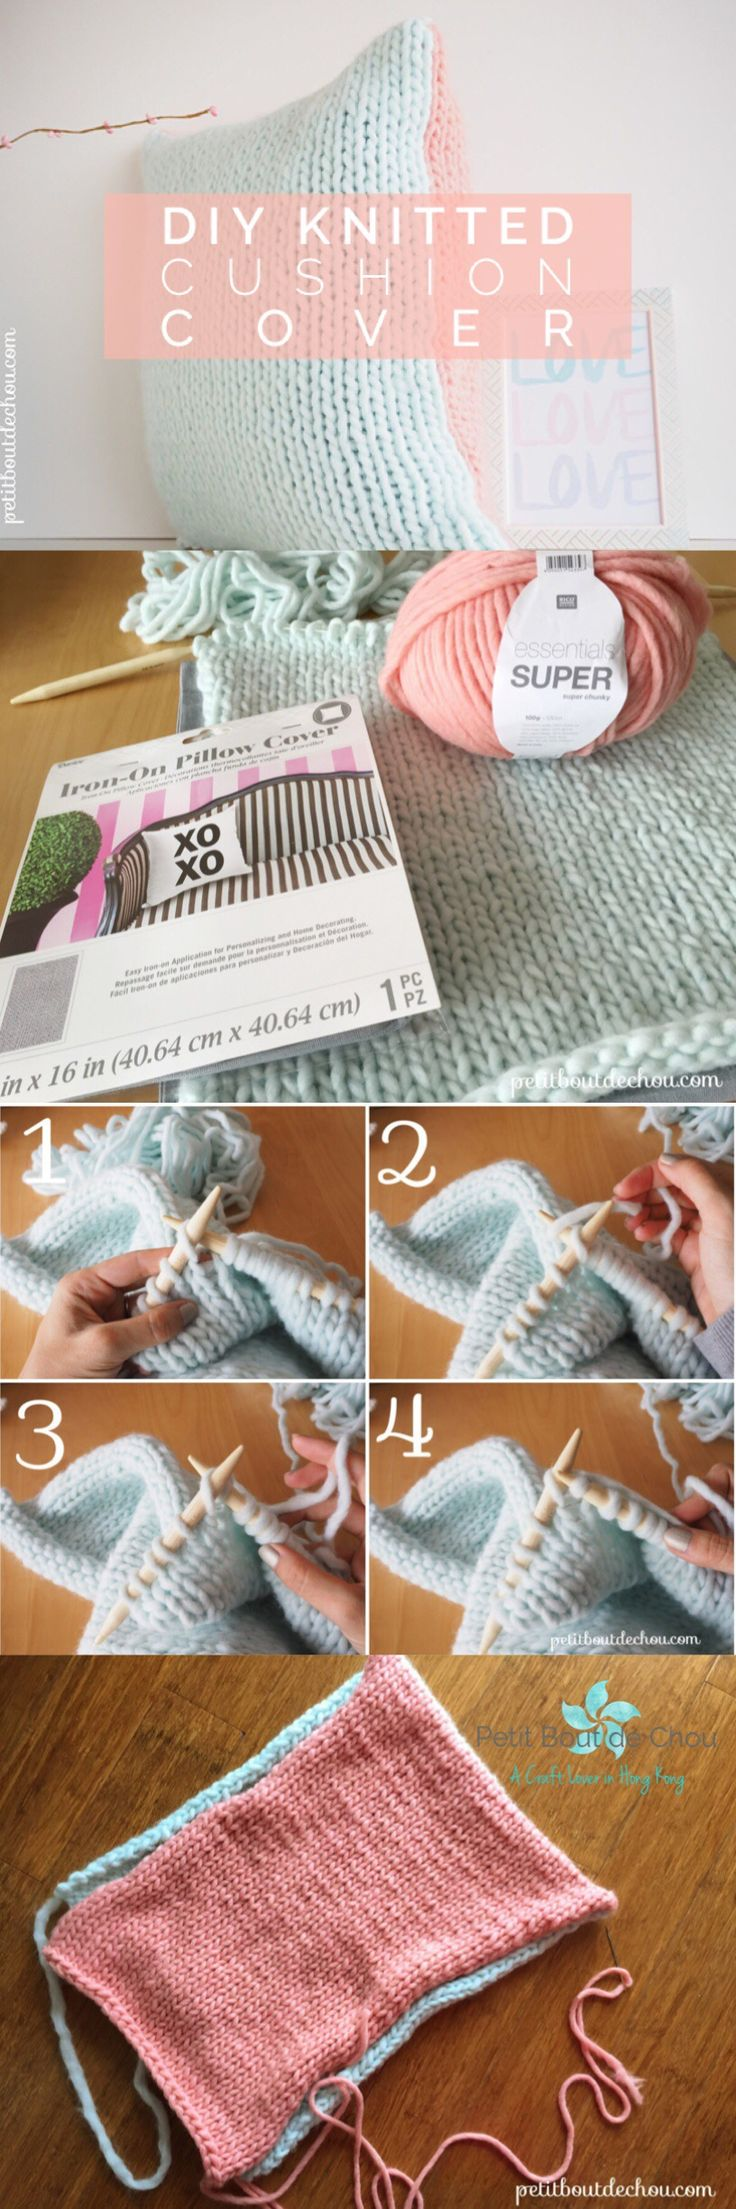 An easy knitting project ideal for beginners!